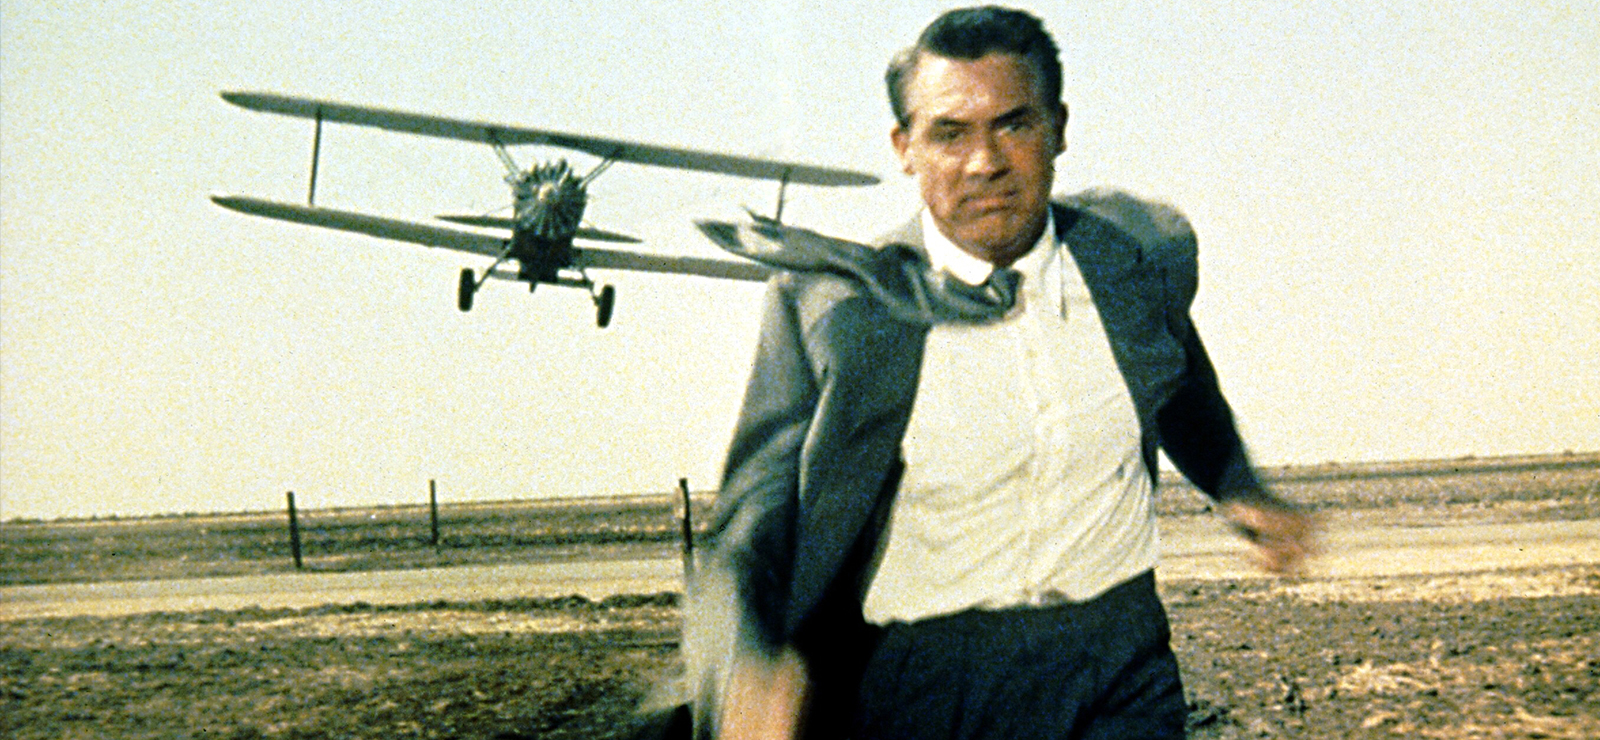 [Outdoor Film ScreeningAlfred Hitchcock'sNorth by Northwest] Cary Grant in North by Northwest (1959); MGM/Photofest